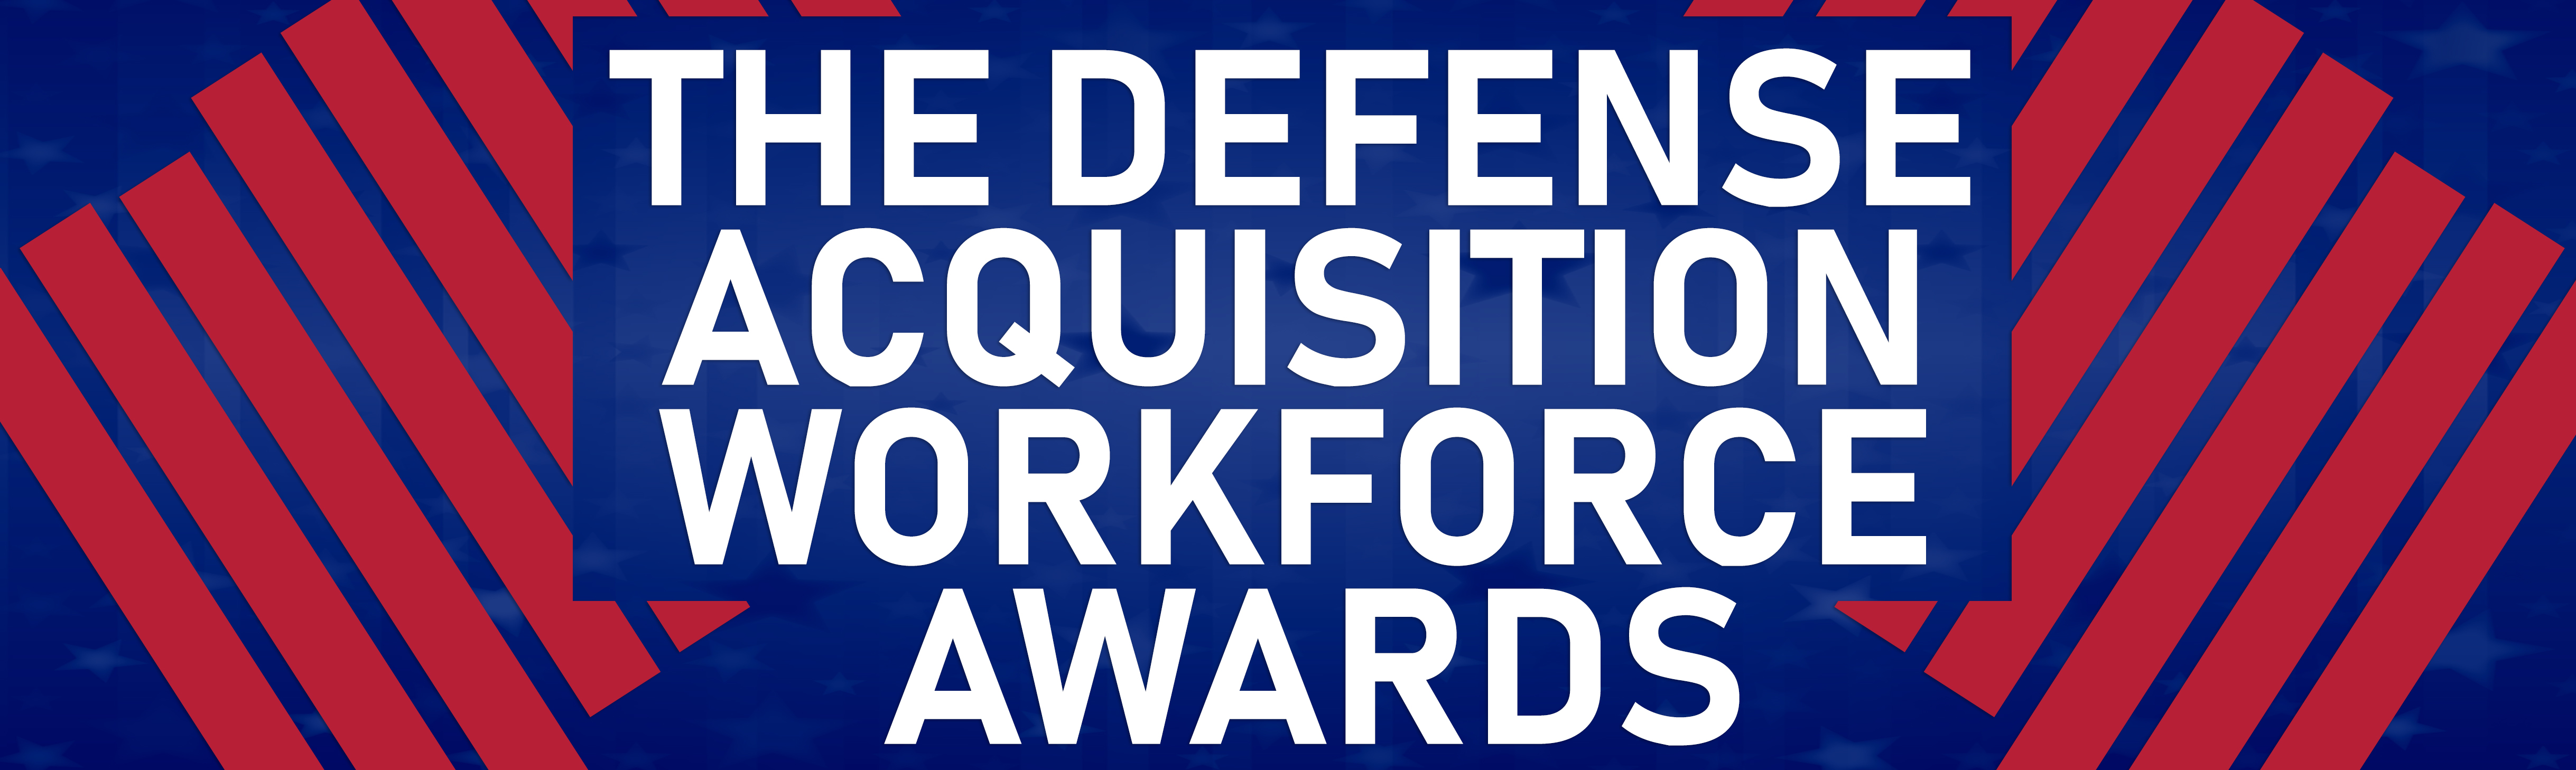 https://www.dau.edu/PublishingImages/The_Defense_Acquisition_Workforce_Awards.jpg